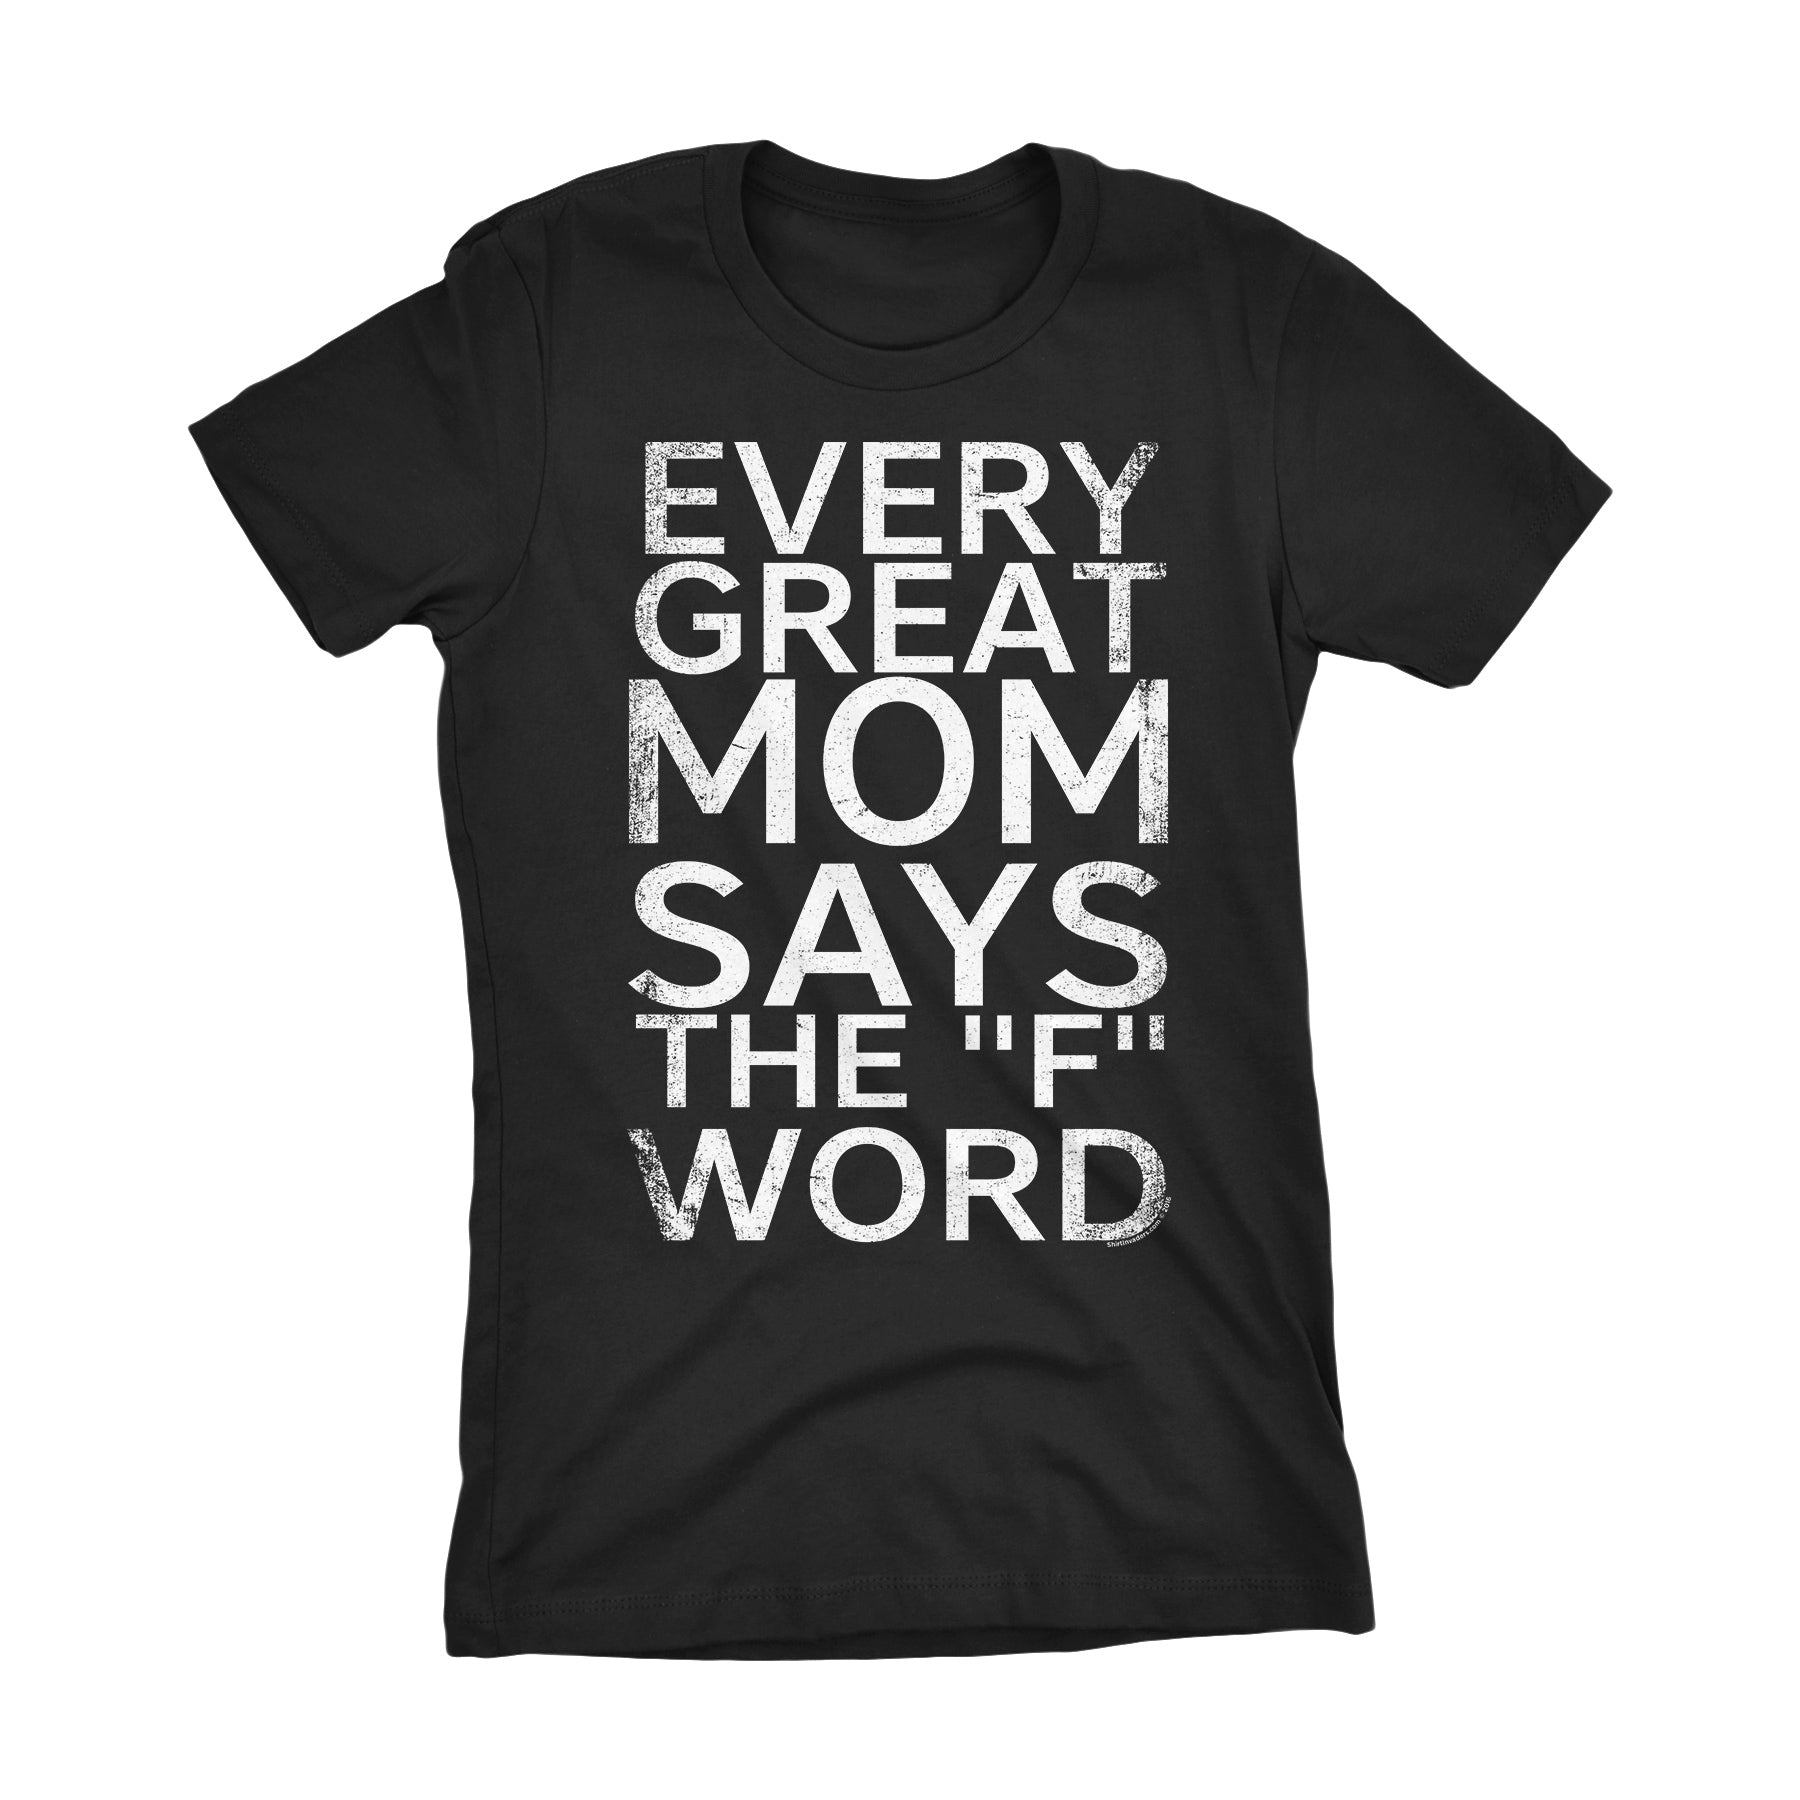 Every Great MOM Says The F Word - Mother's Day Gift Ladies Fit T-shirt